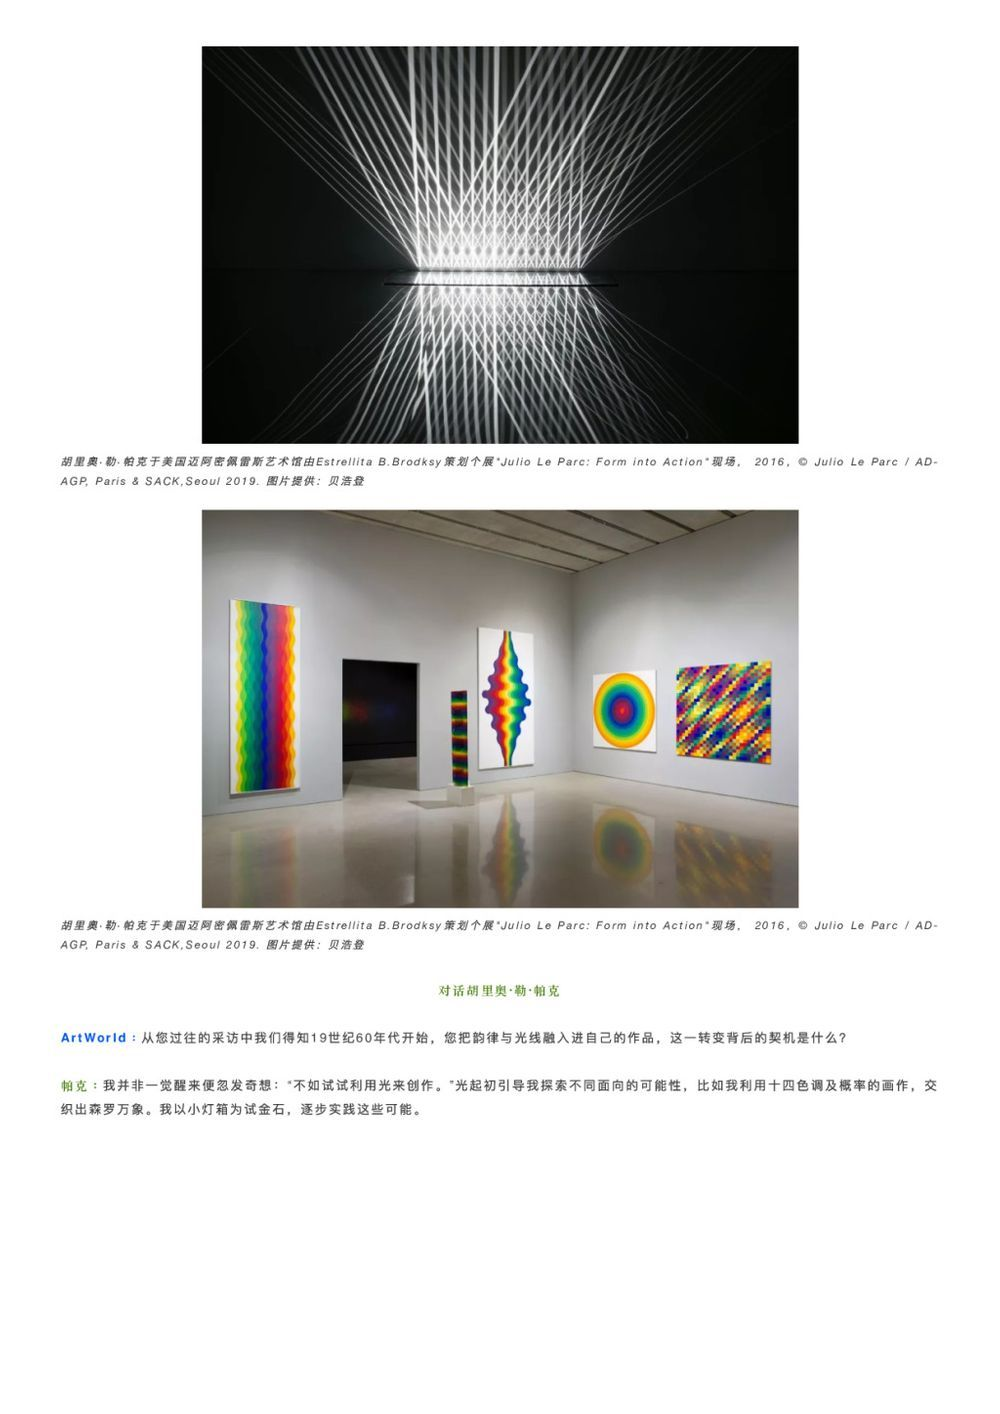 Art World | Julio LE PARC